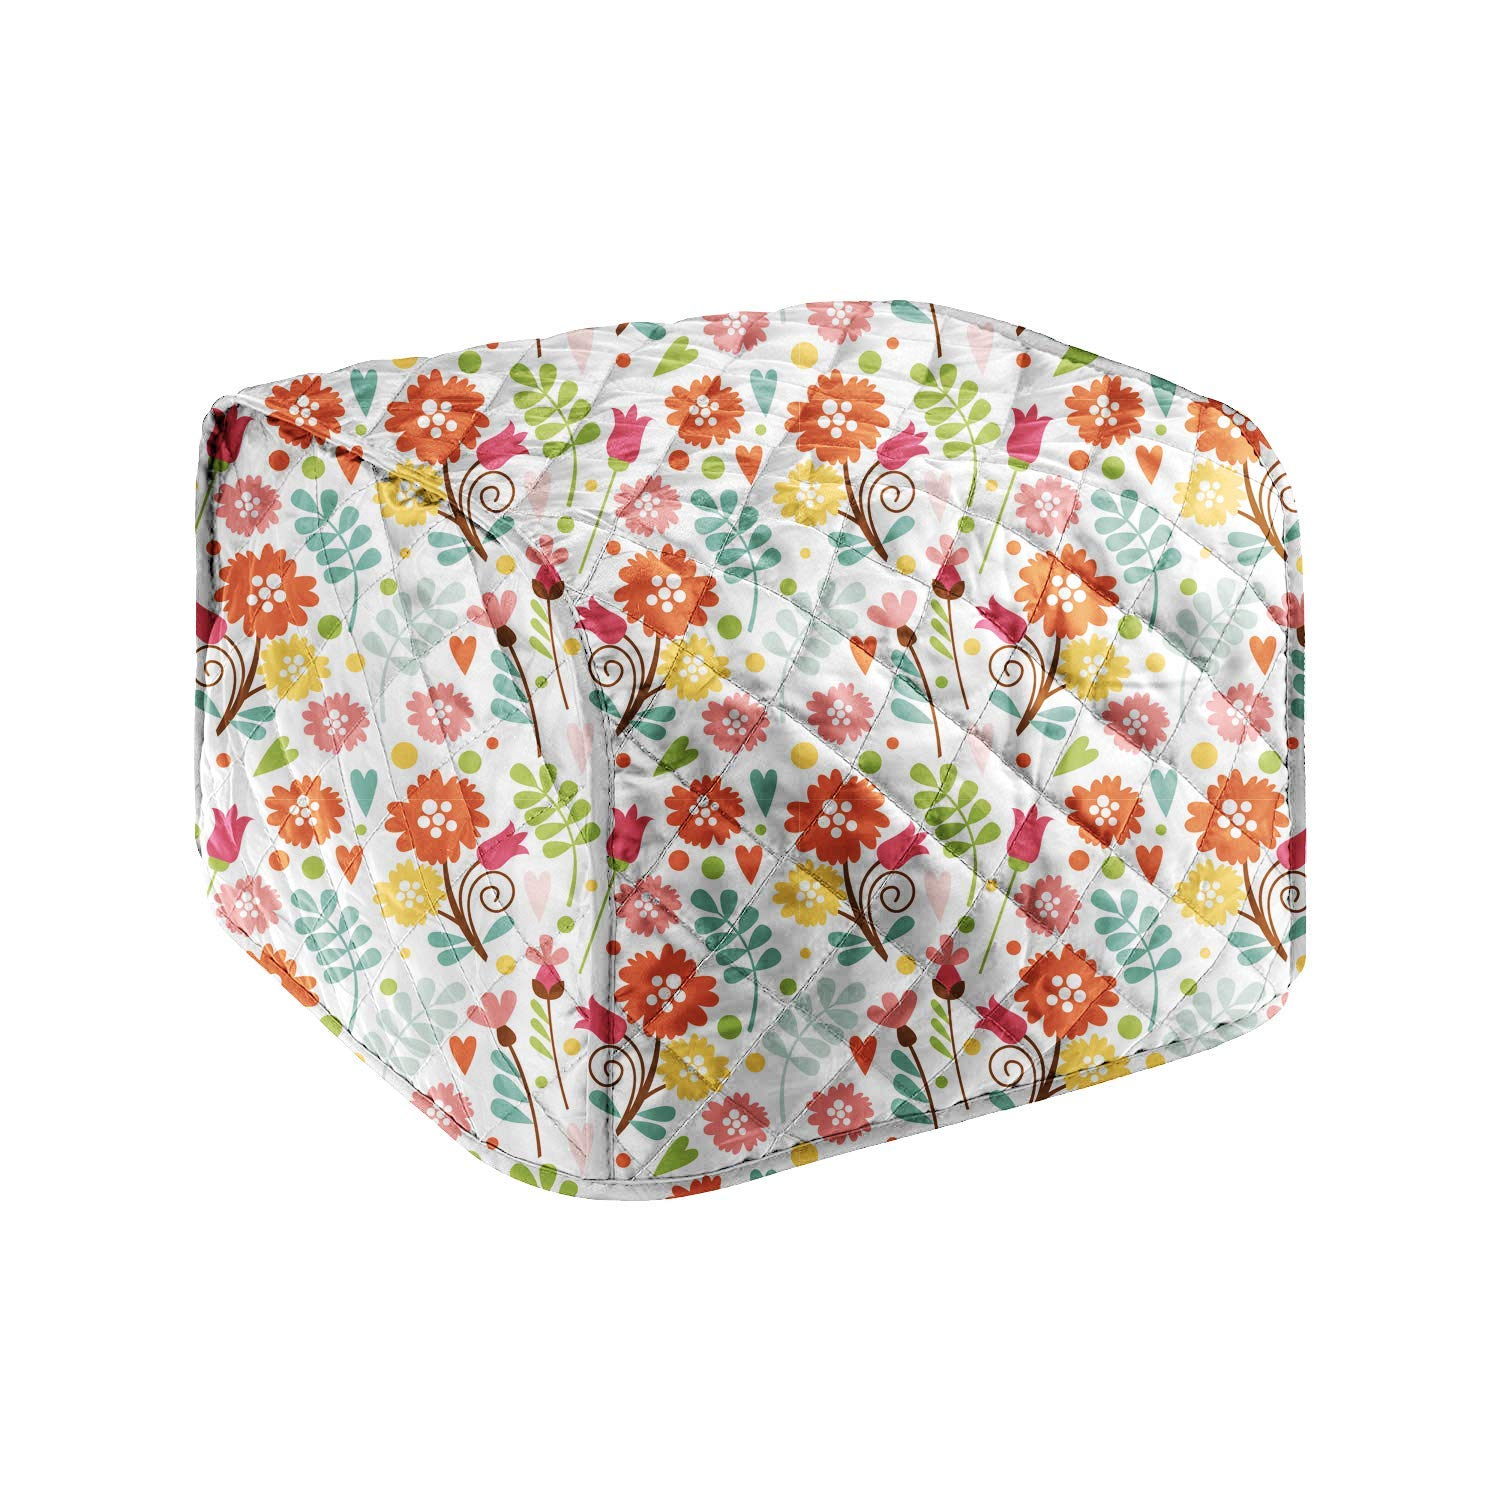 4-Slice Toaster Cover, Cotton Quilted Bread Microwave Toaster Oven Cover Kitchen Small Appliance Cover Bakeware Cover Organizer Bag Anti Fingerprint Protection Durable Bread Machine Cover (Flower#6)